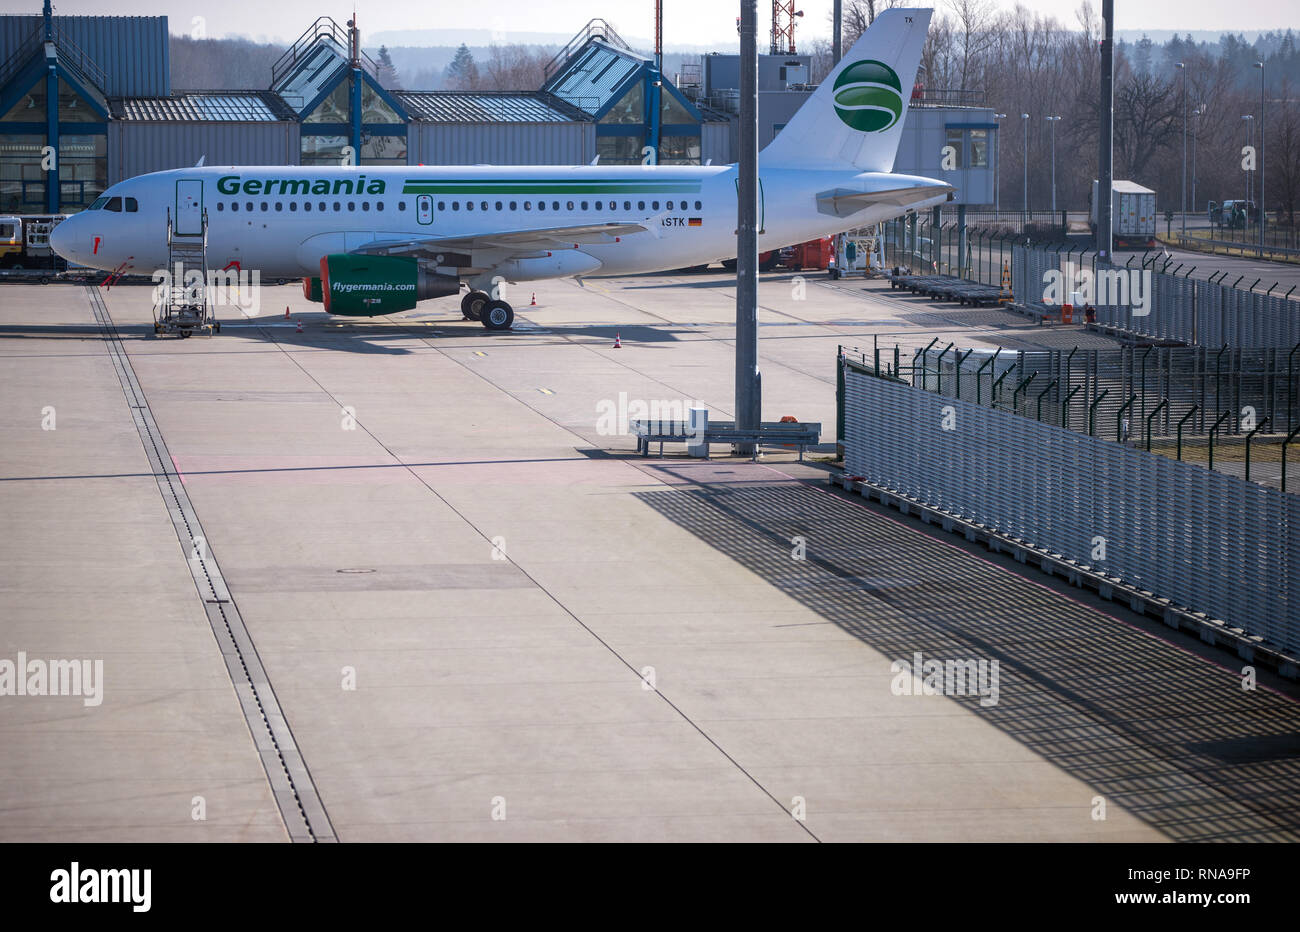 Laage, Germany. 18th Feb, 2019. A parked plane of the insolvent airline Germania stands on a parking position of the airport Rostock-Laage. Following the insolvency of the British regional airline Flybmi and the holiday airline Germania, the airport's shareholders are discussing the economic situation. For the airport Rostock-Laage the Flybmi flights to Munich were the last regular connections. Credit: Jens Büttner/dpa-Zentralbild/dpa/Alamy Live News - Stock Image